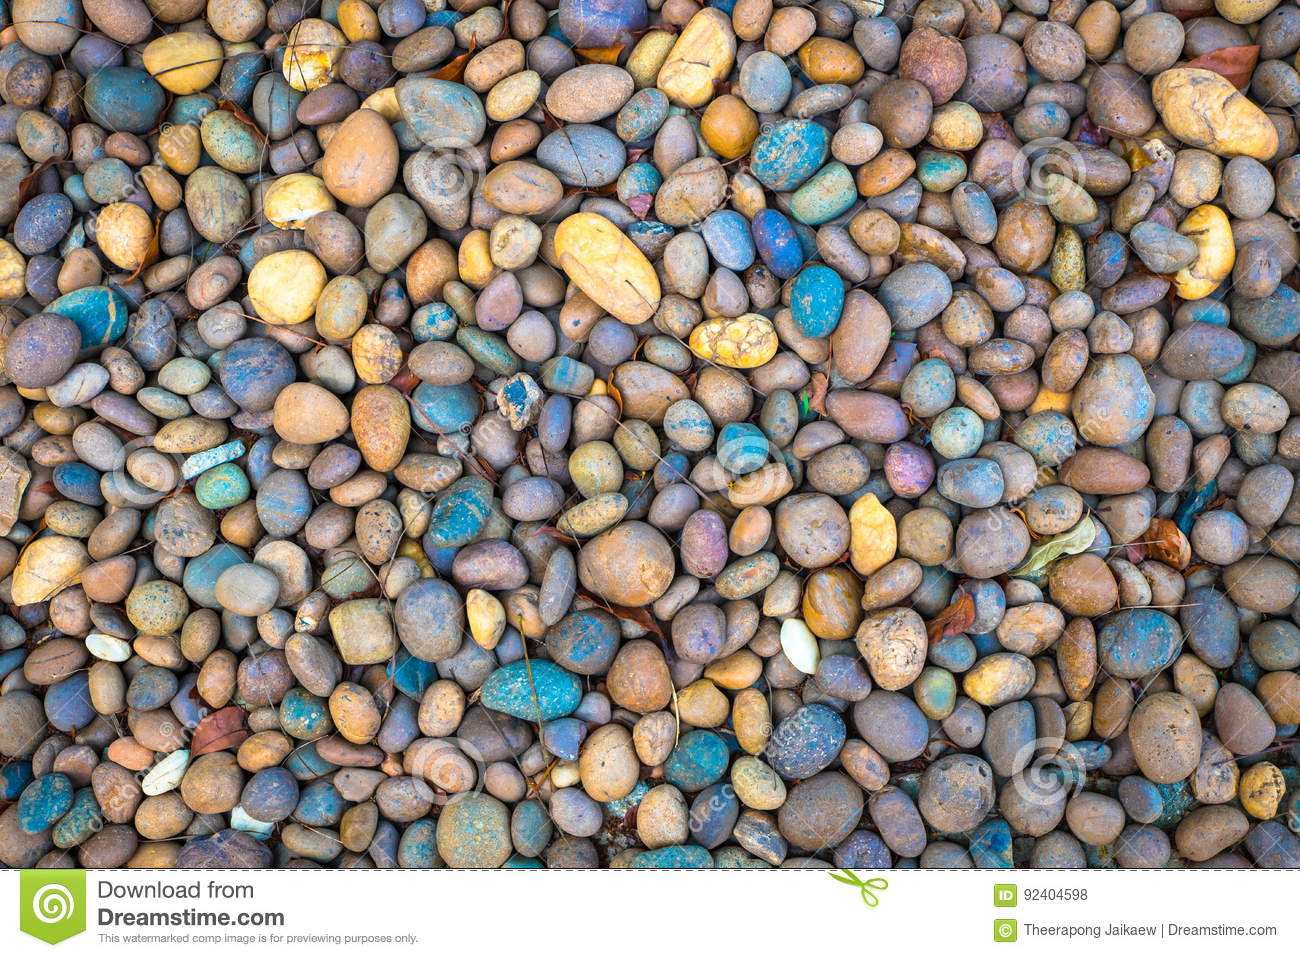 Smooth shaped white stones surface texture background stock photo - Abstract Smooth Round Pebbles Sea Stone Texture Background Stock Photo Image 92404598